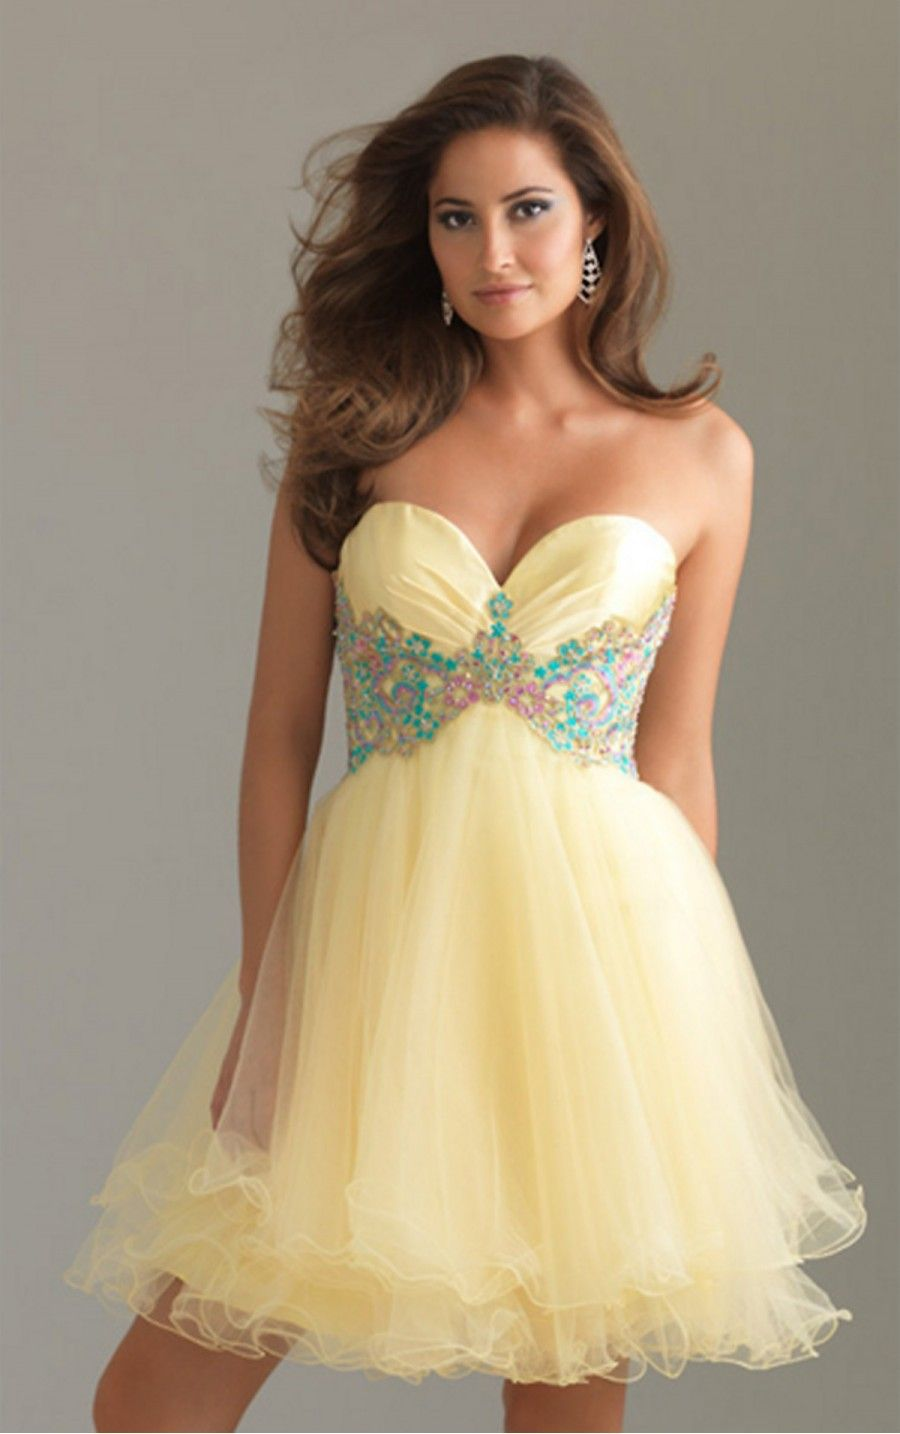 Daffodil ball gown short sweetheart dress dresses